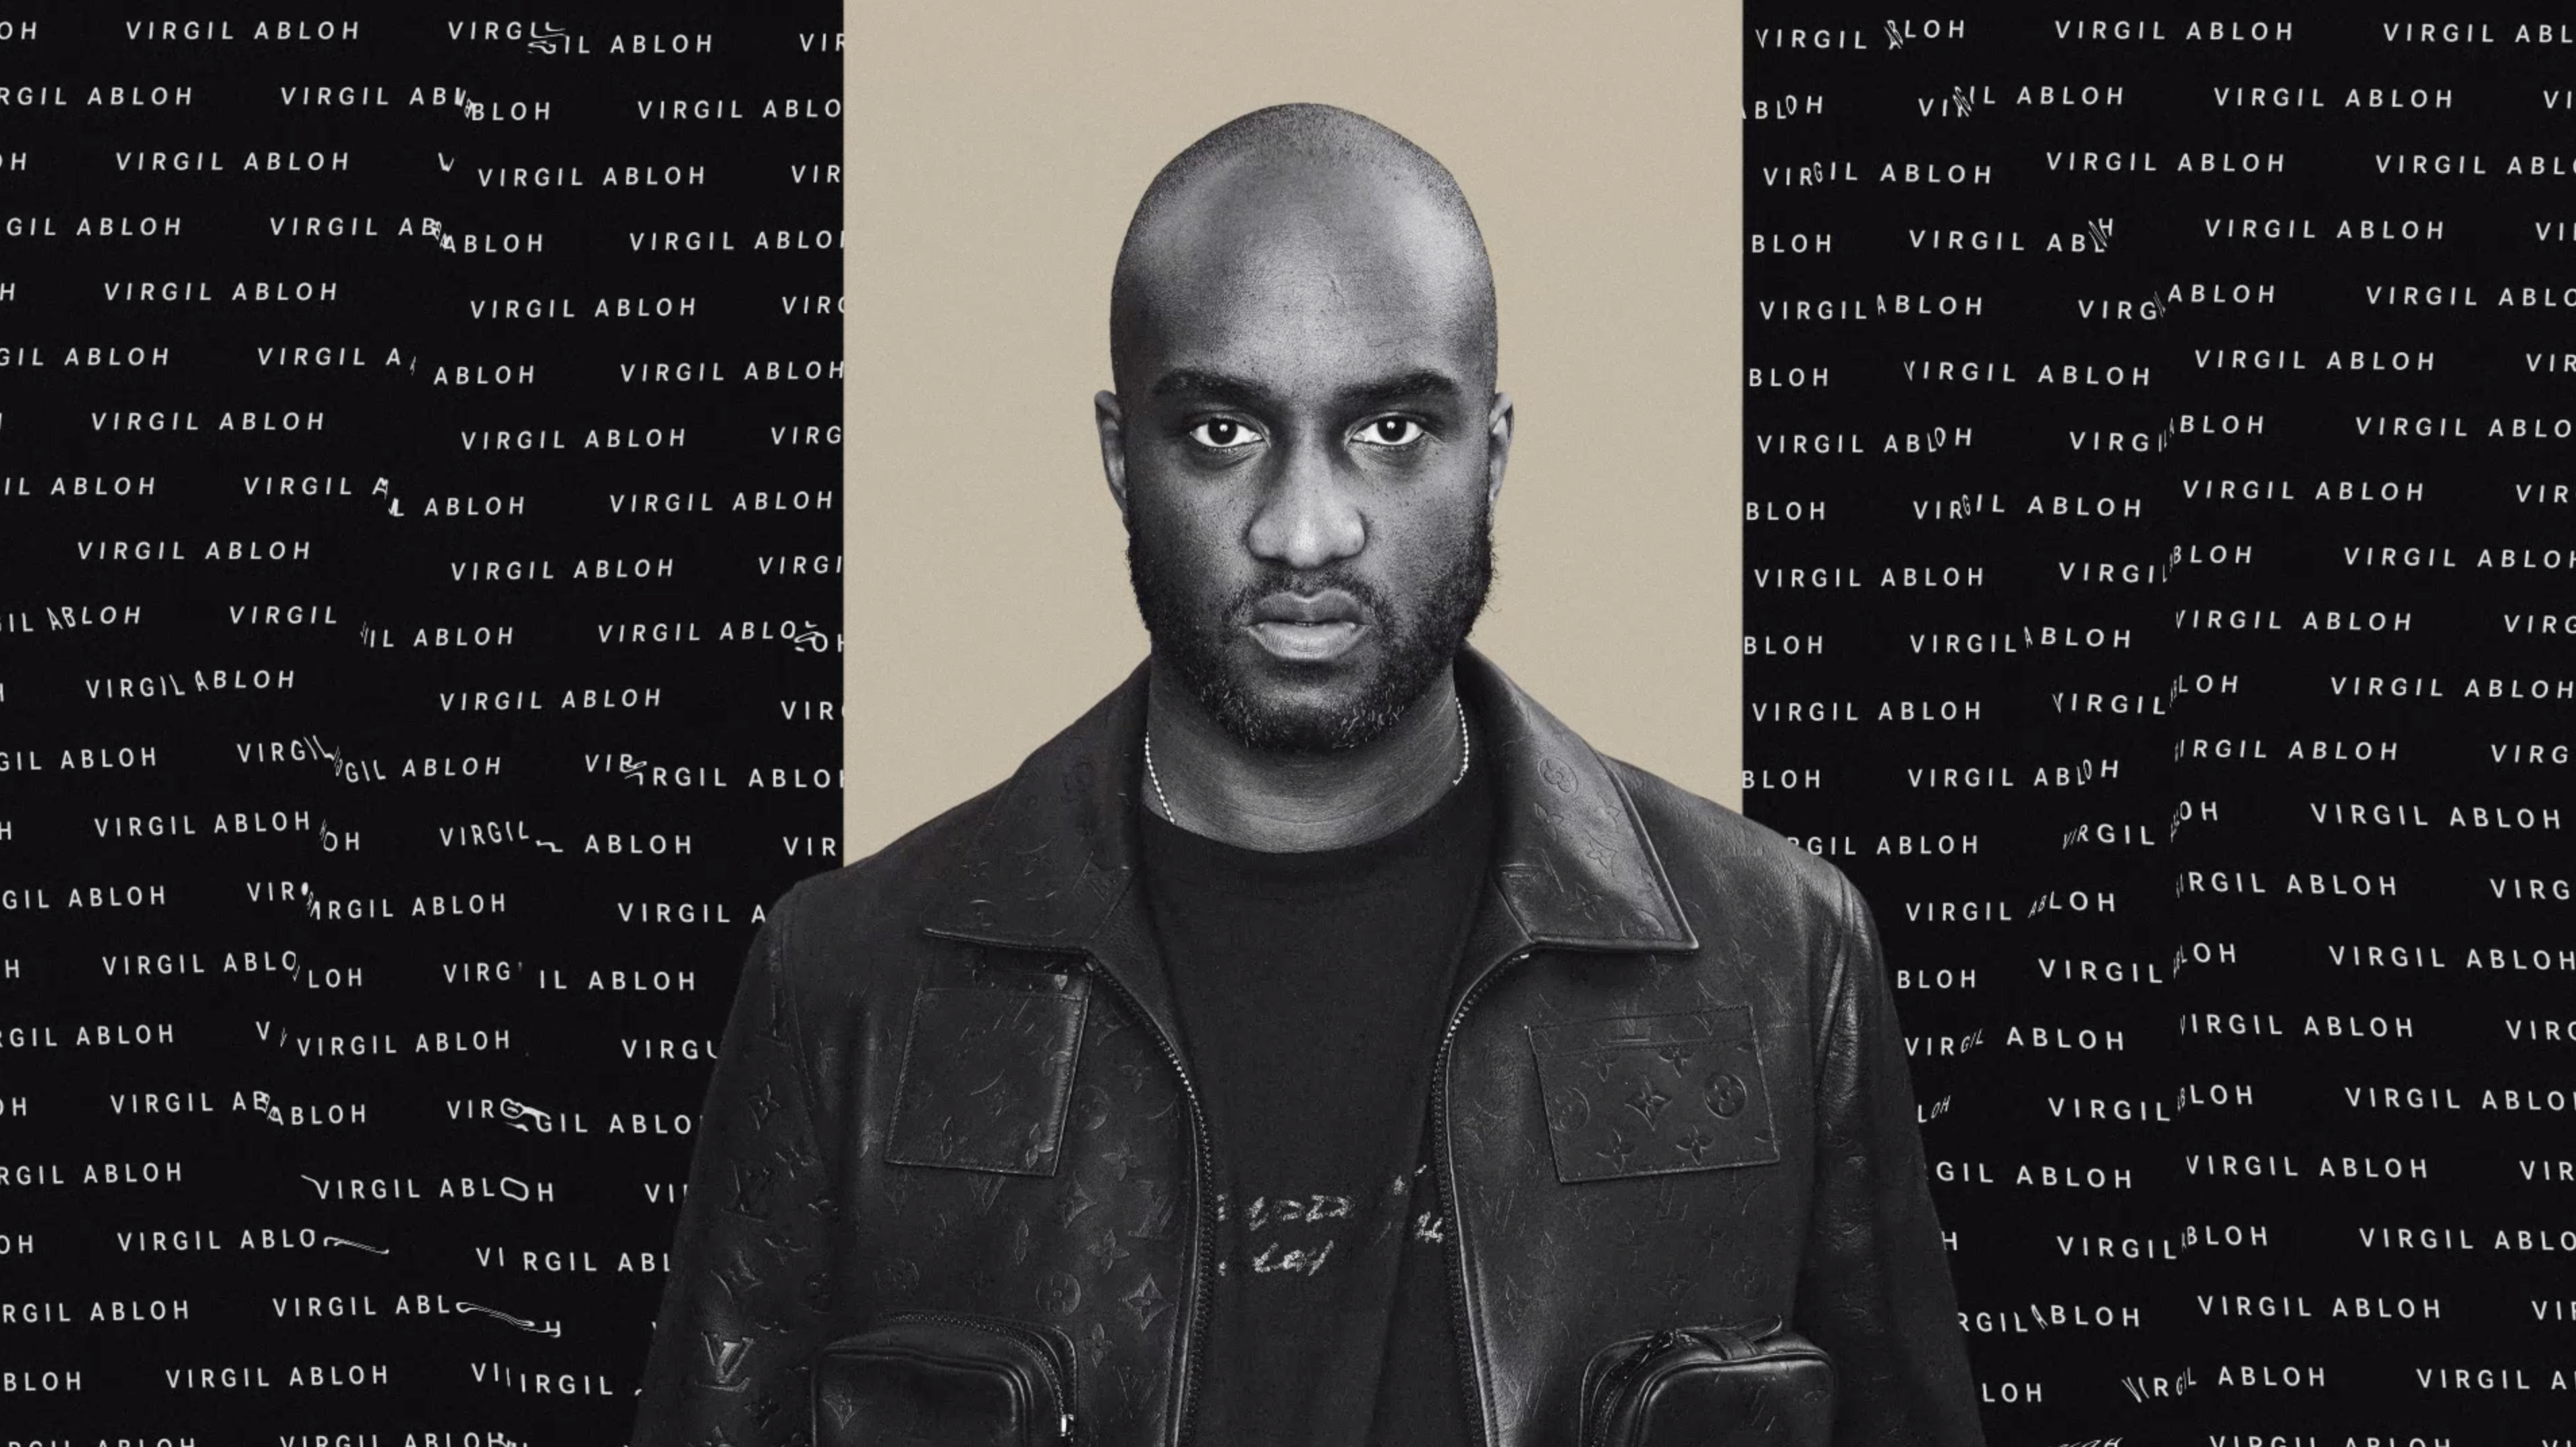 Virgil Abloh Collaborates With Mercedes-Benz